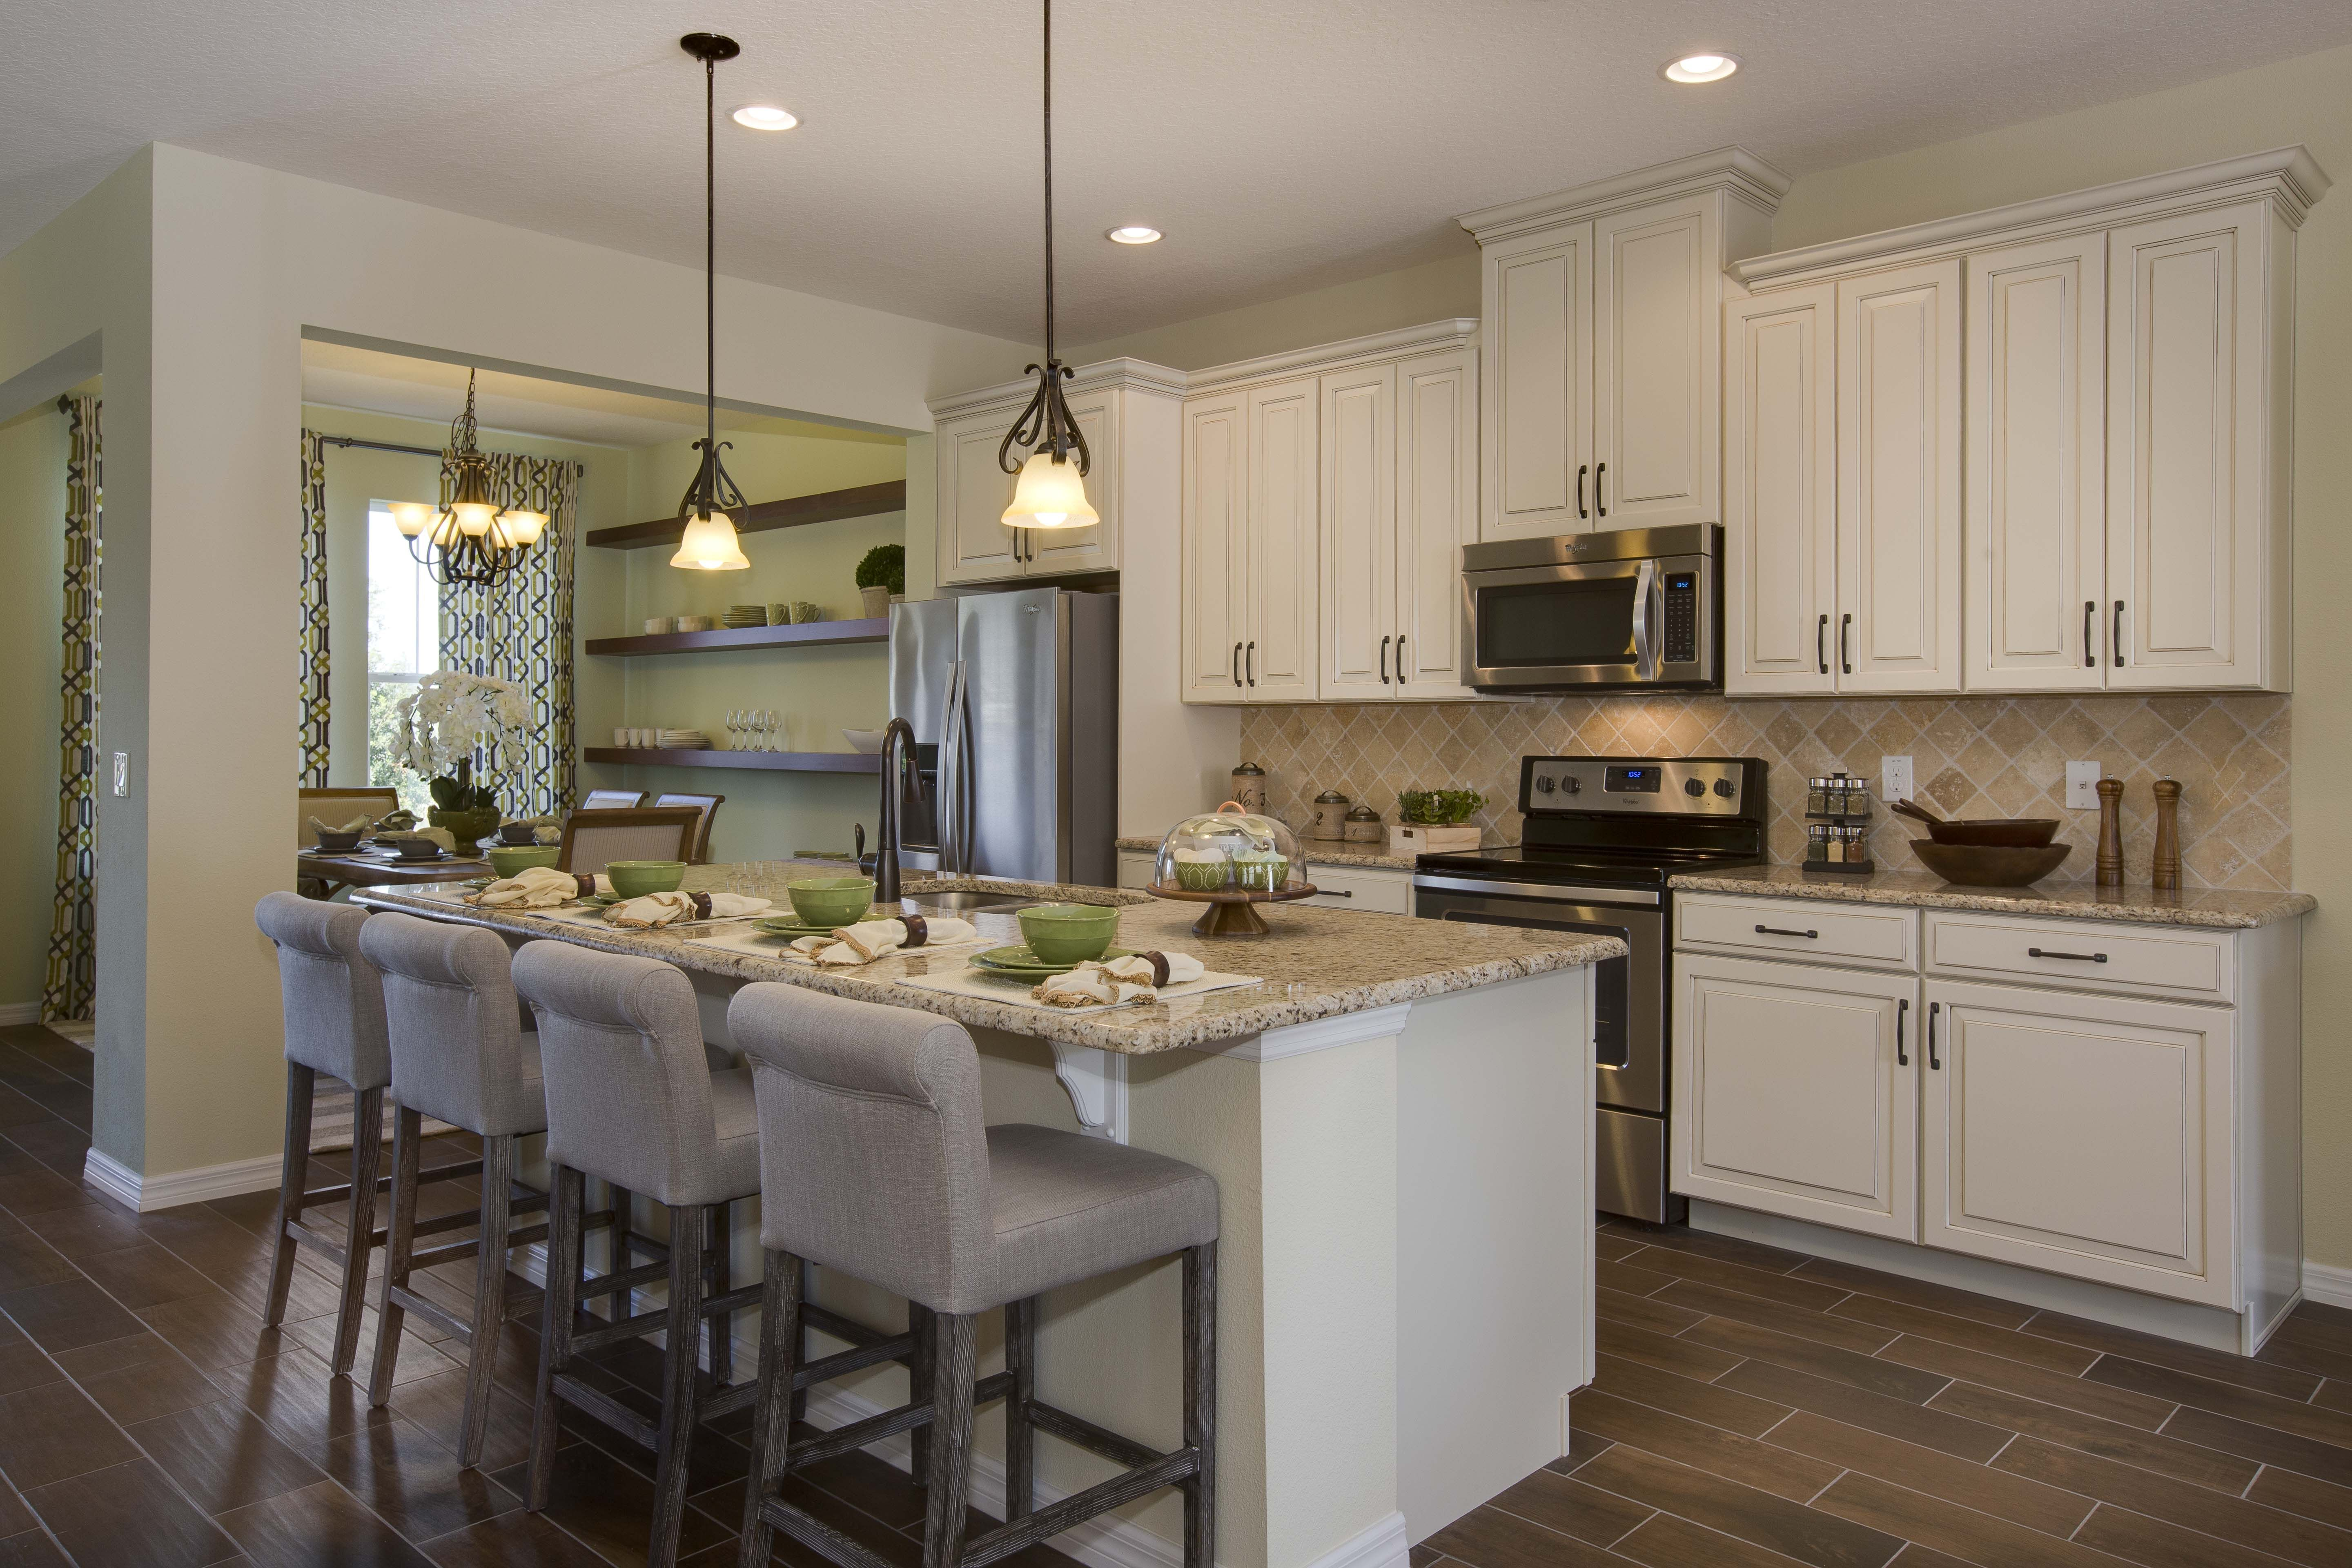 The wood look tile with white kitchen and granite